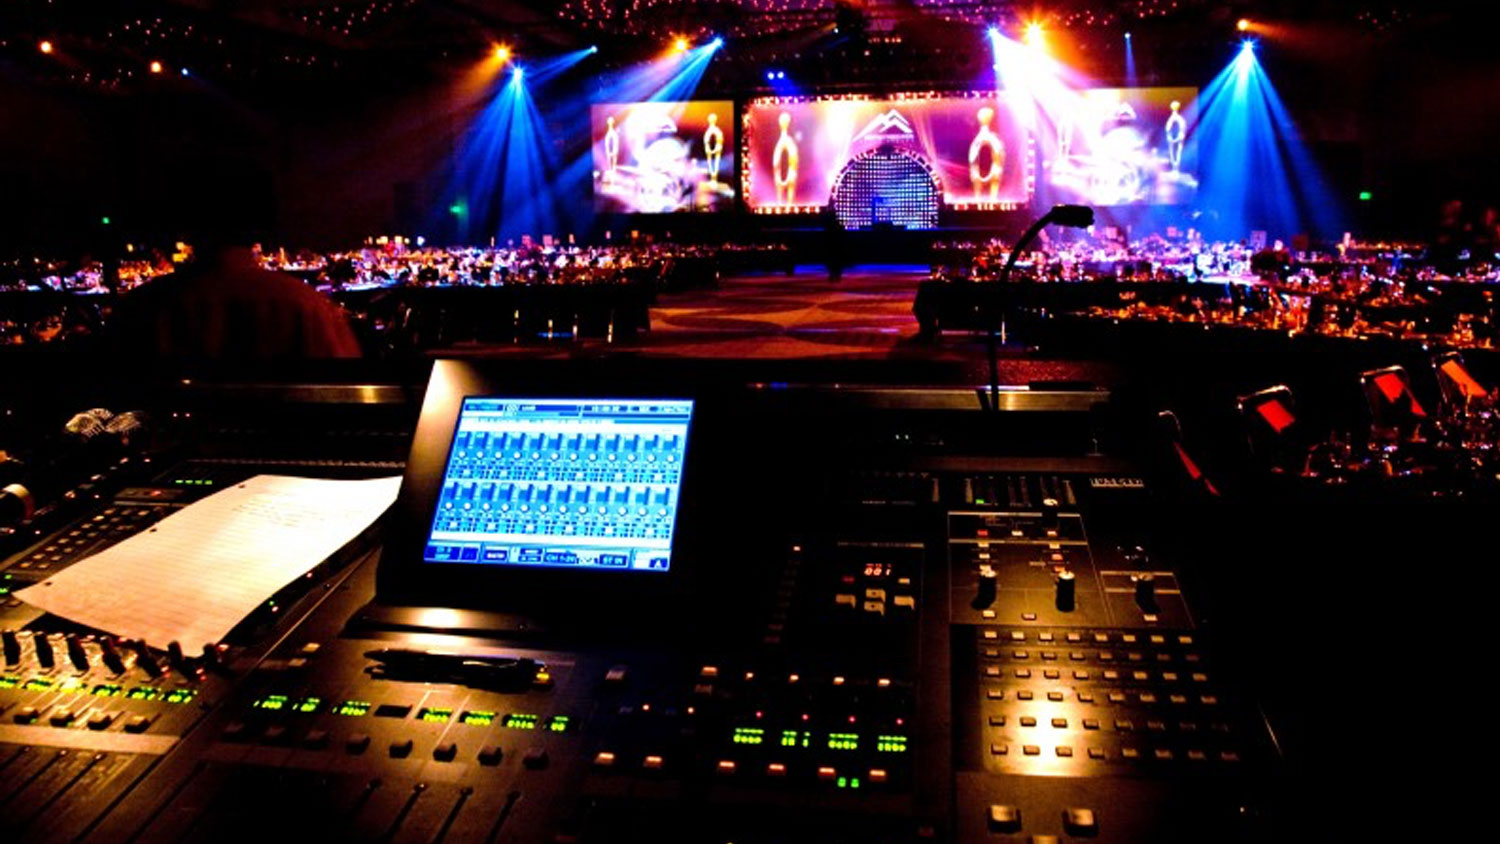 Are you looking for audio visual rental in Hong Kong? We provide comprehensive audio-visual rental services for events. Effective deployment and operation of audio visual equipment is critical to the success of any production. We own and offers a full suite of audio-visual equipment for hire including audio equipment, LED lighting, incandescent lighting, video projection equipment, LED walls and the professional technicians to operate it to perfection. Because we have an in-house AV team we strategize how to best utilize audio-visual equipment from the initial planning stages of your event. This enables us to give you the highest impact from audio-visual equipment hire for your budget.